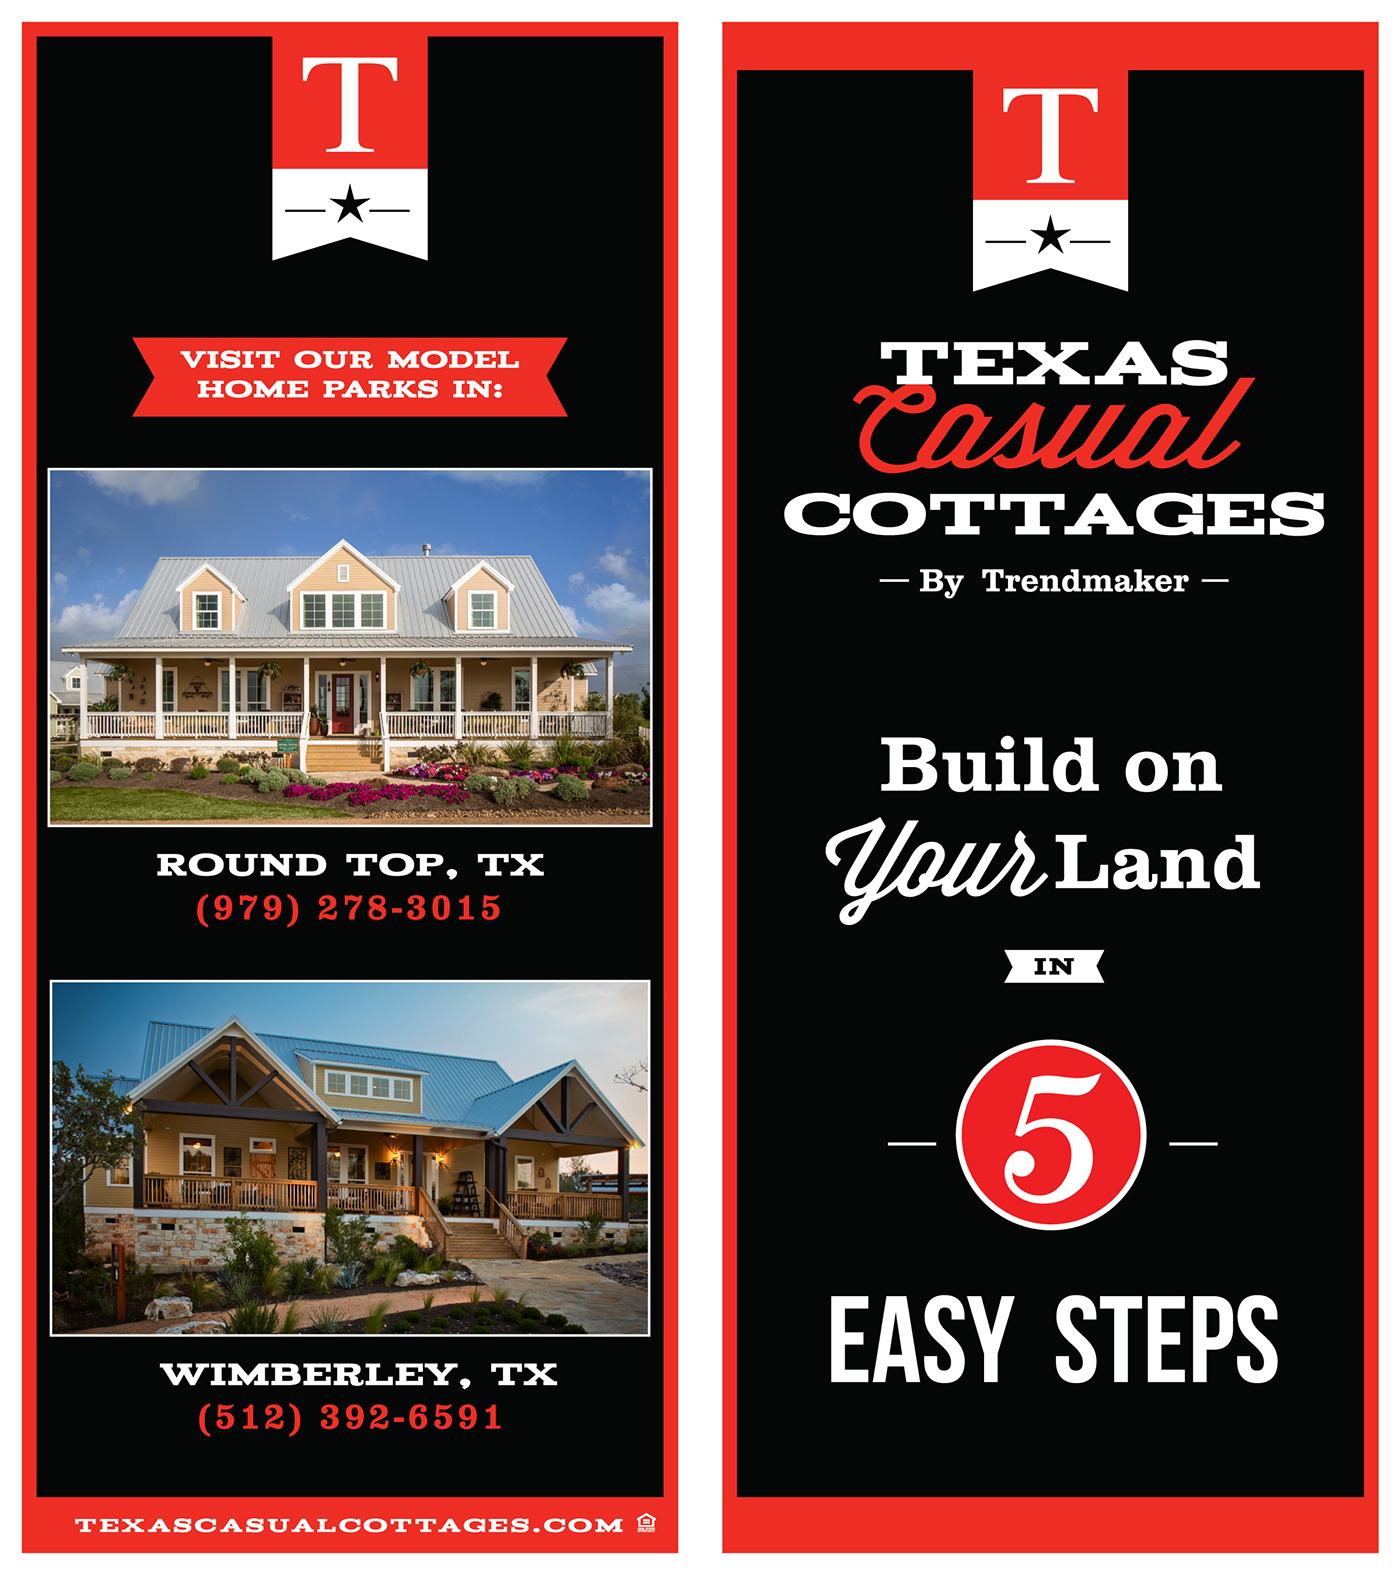 Texas Casual Cottages by Trendmaker - Branding on Behance